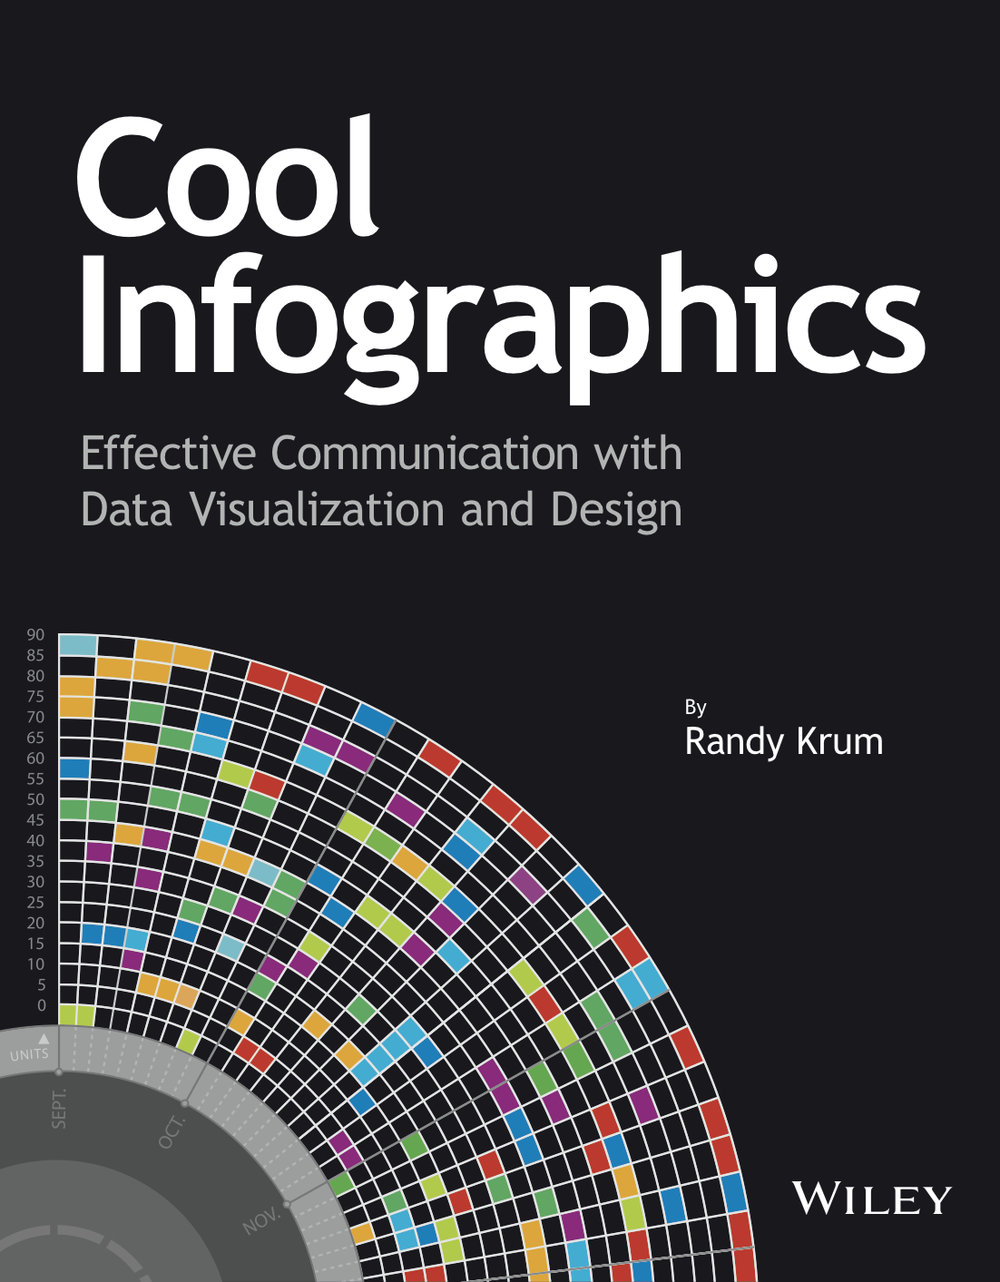 Introducing Cool Infographics, the book